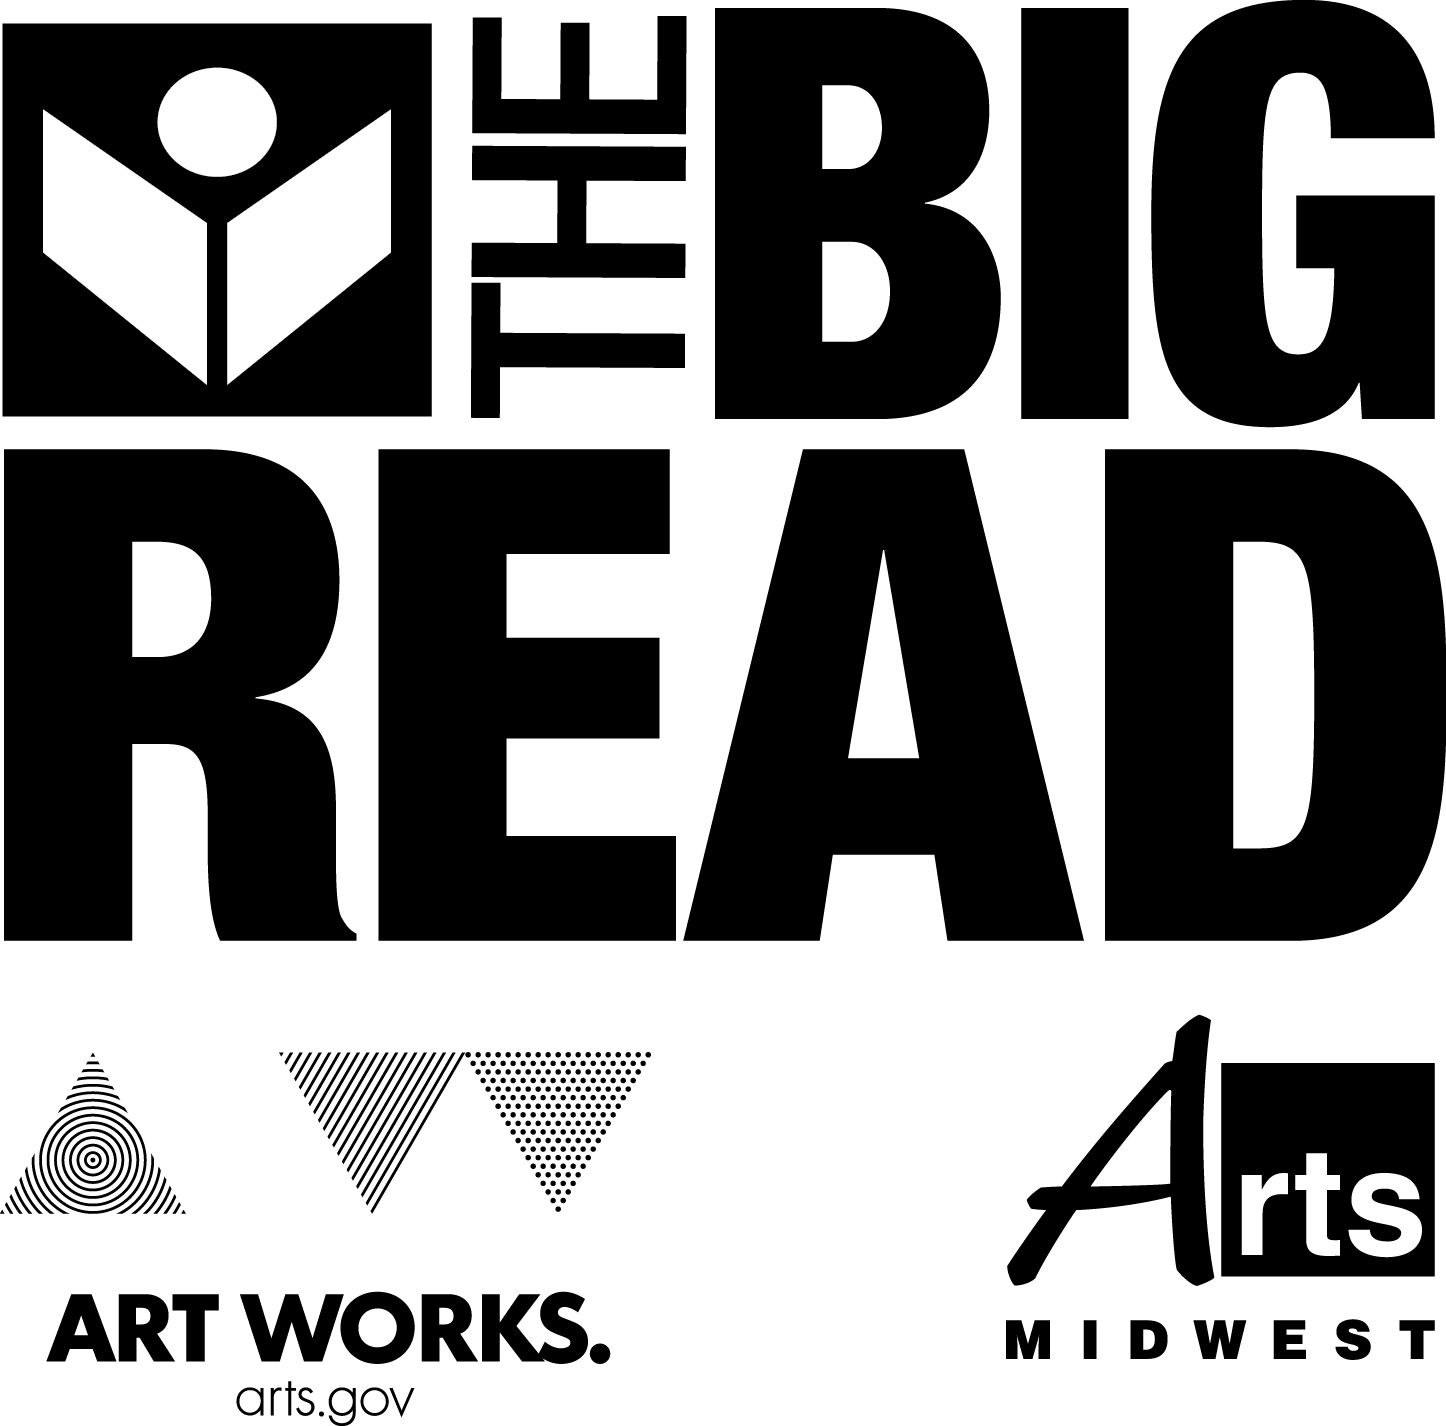 The Big Read logo